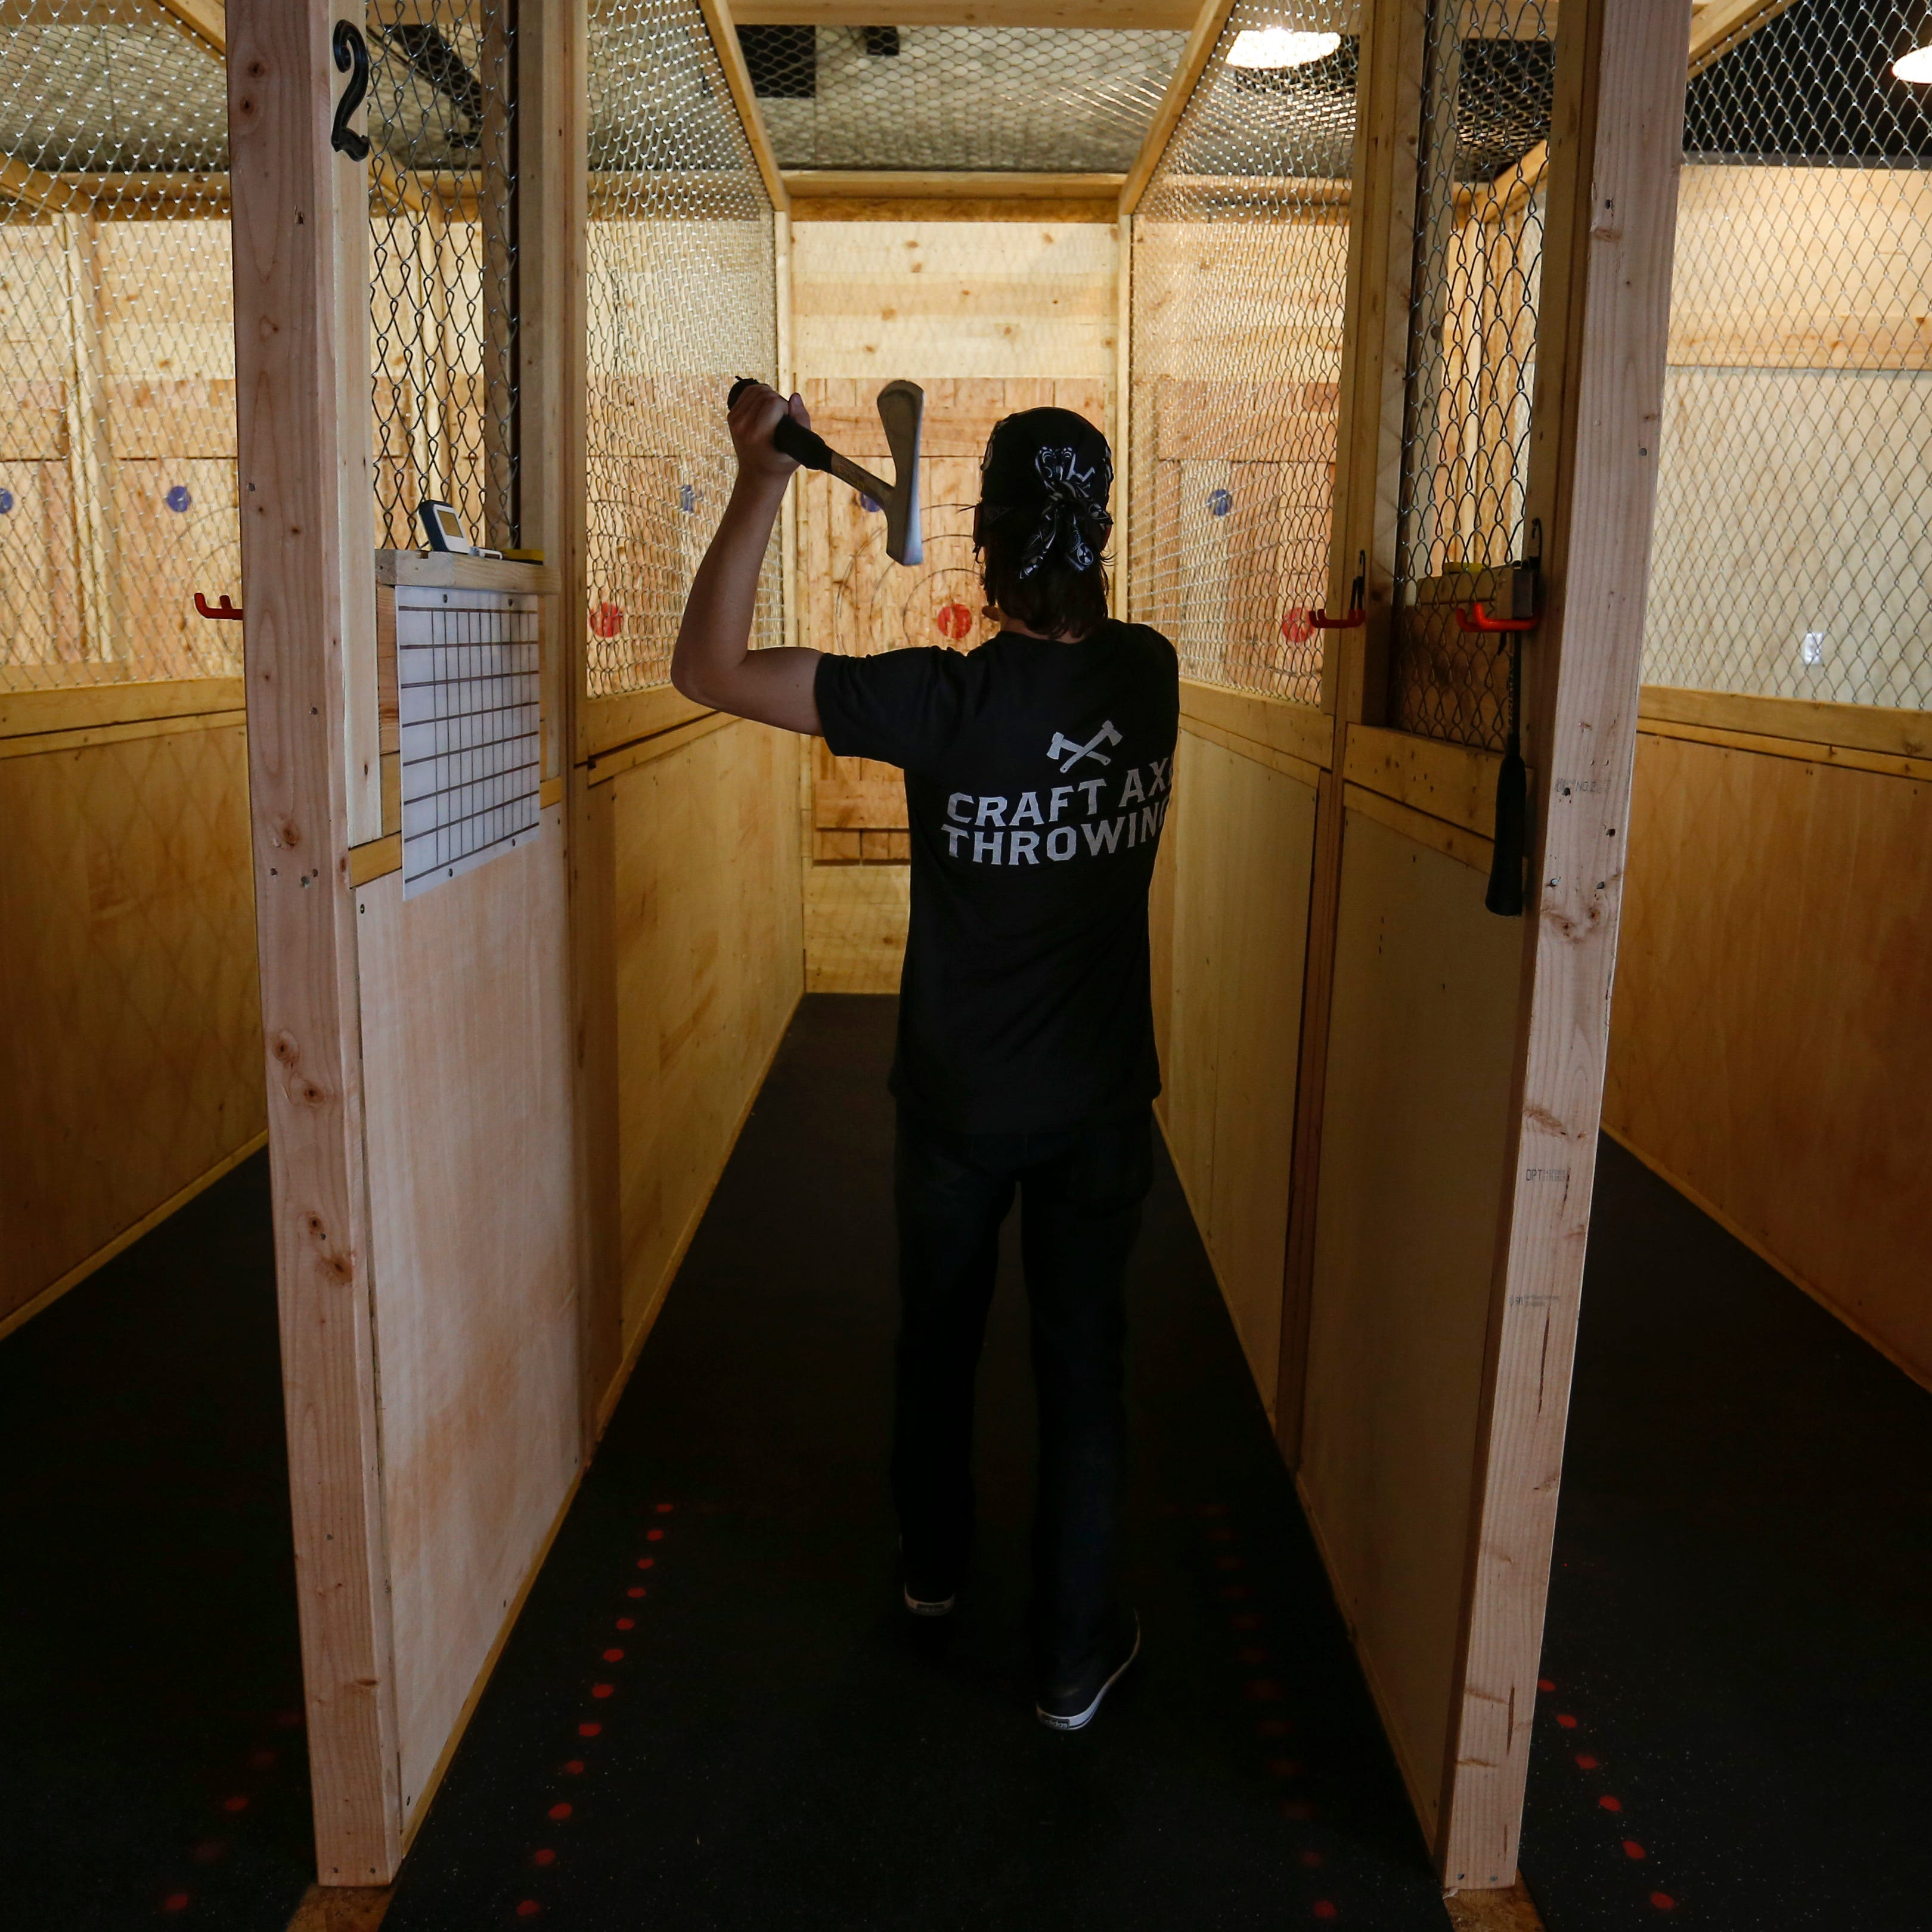 Auburn Hills Hub Stadium's ax throwing poses 'significant concern'